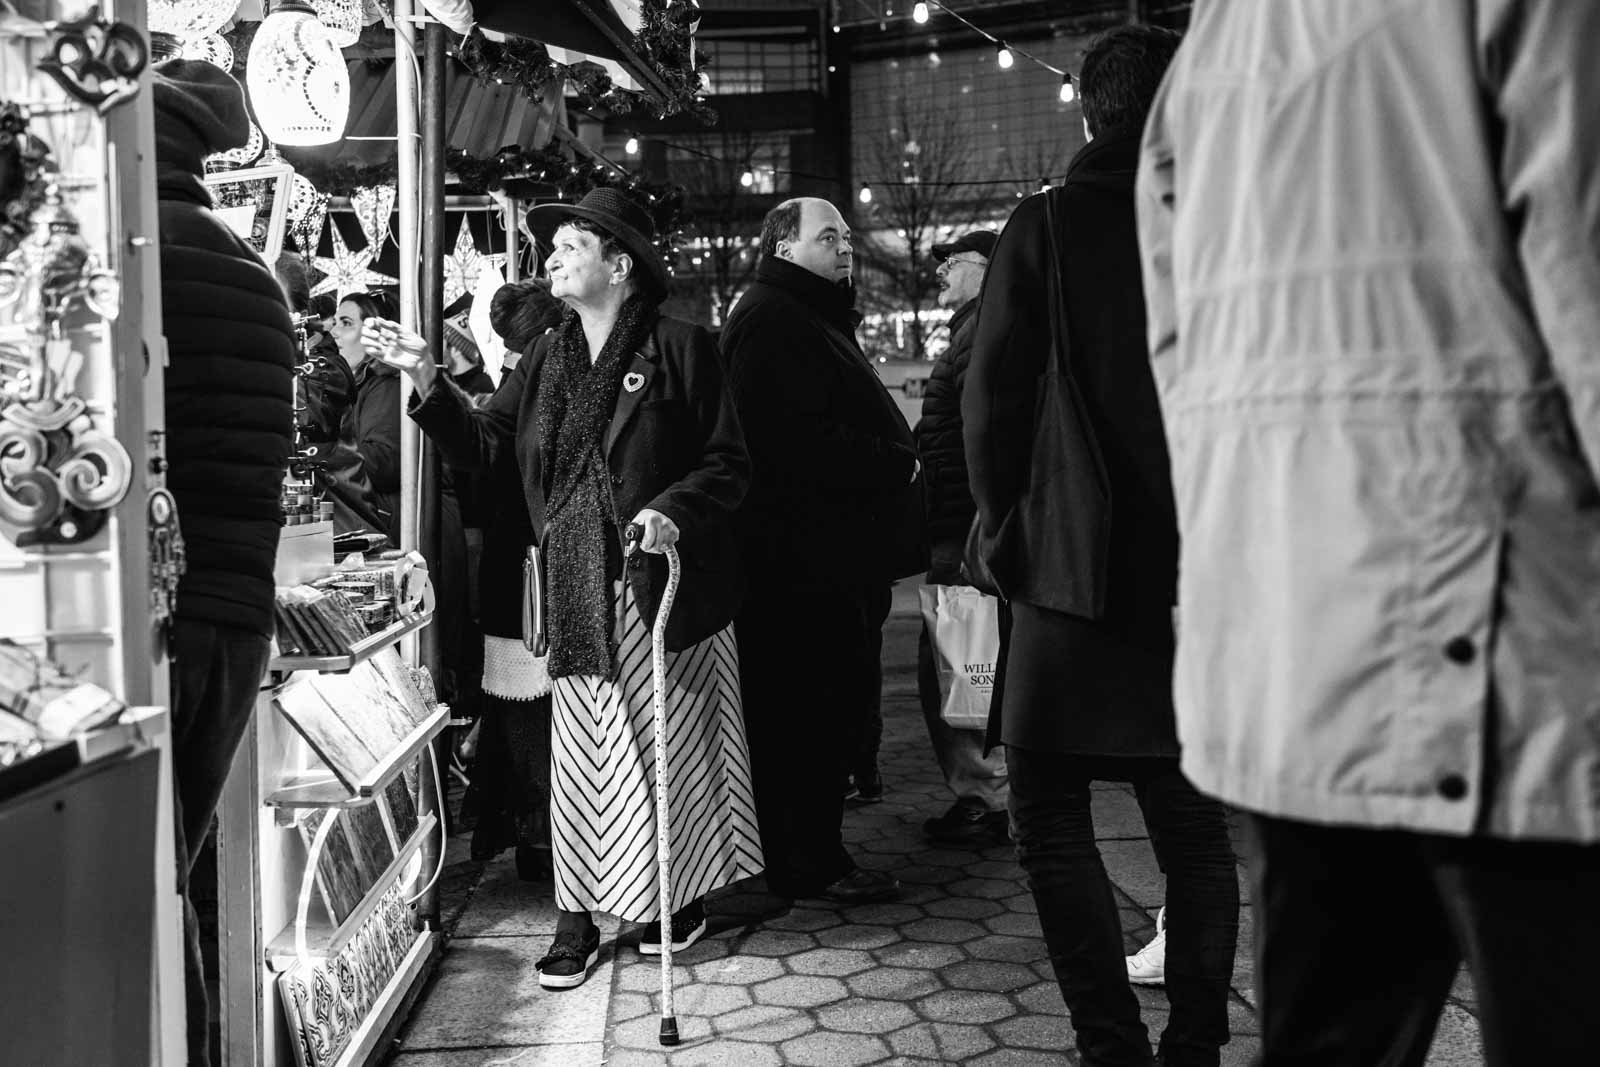 Street photography of a flea market in black and white